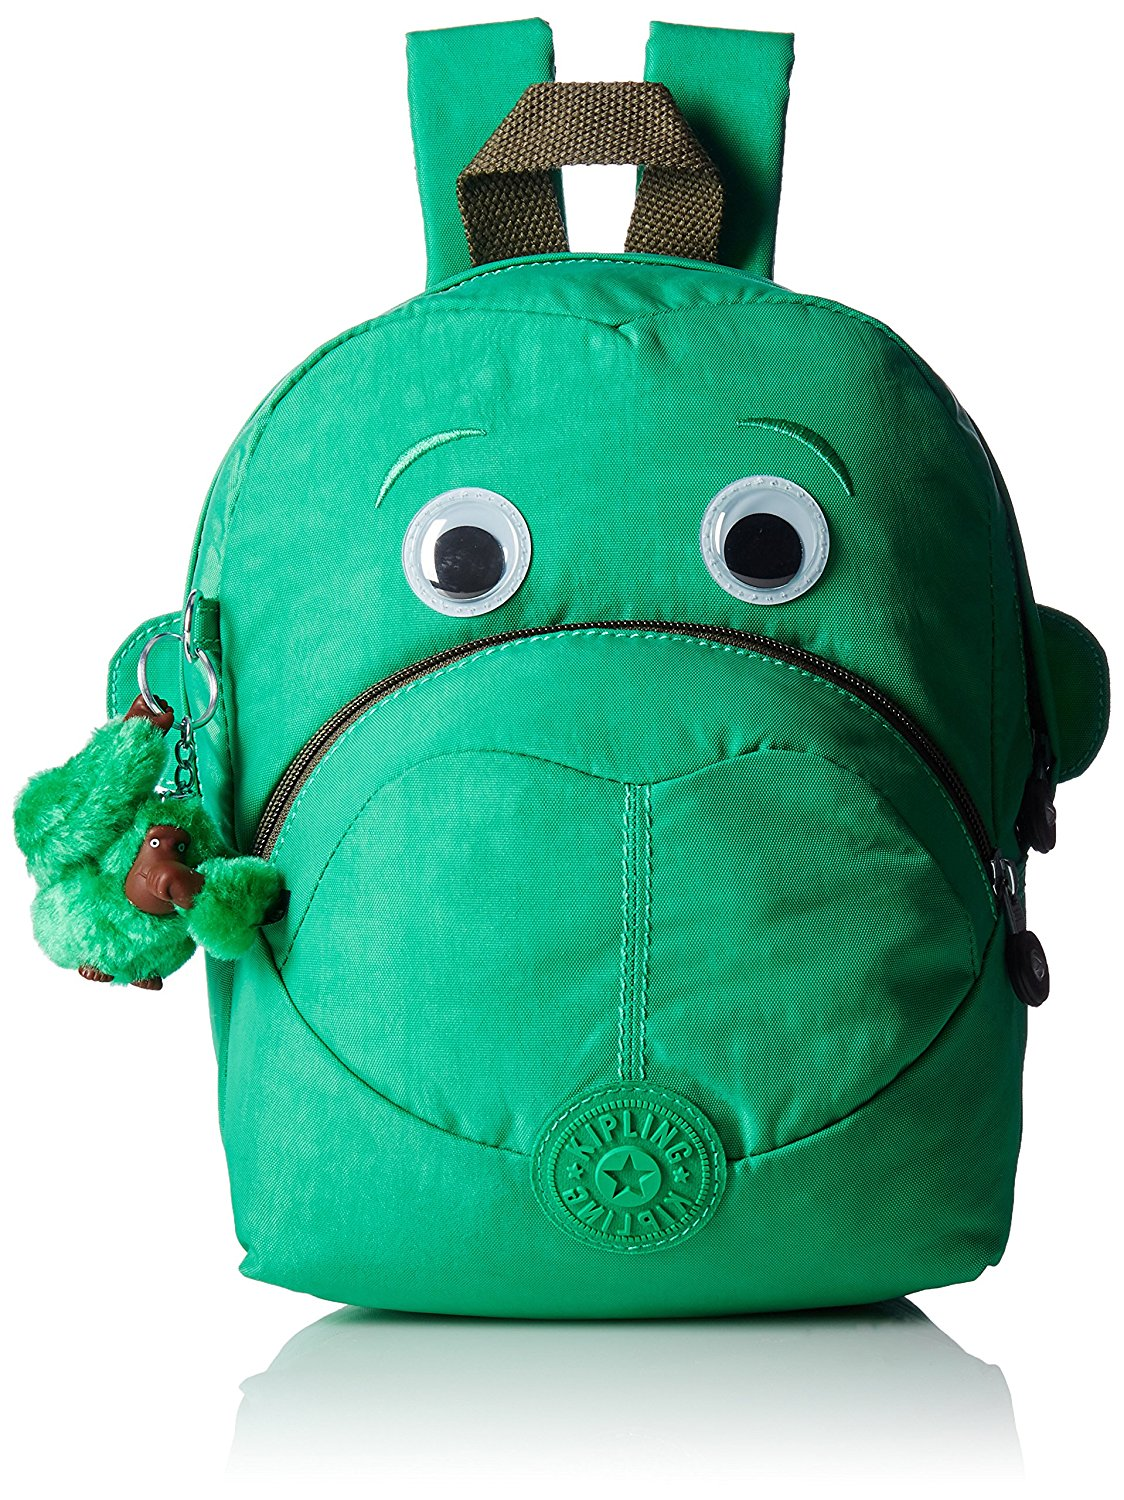 Cheap Kids Green Backpack, find Kids Green Backpack deals on line at ... 70b0a46b70